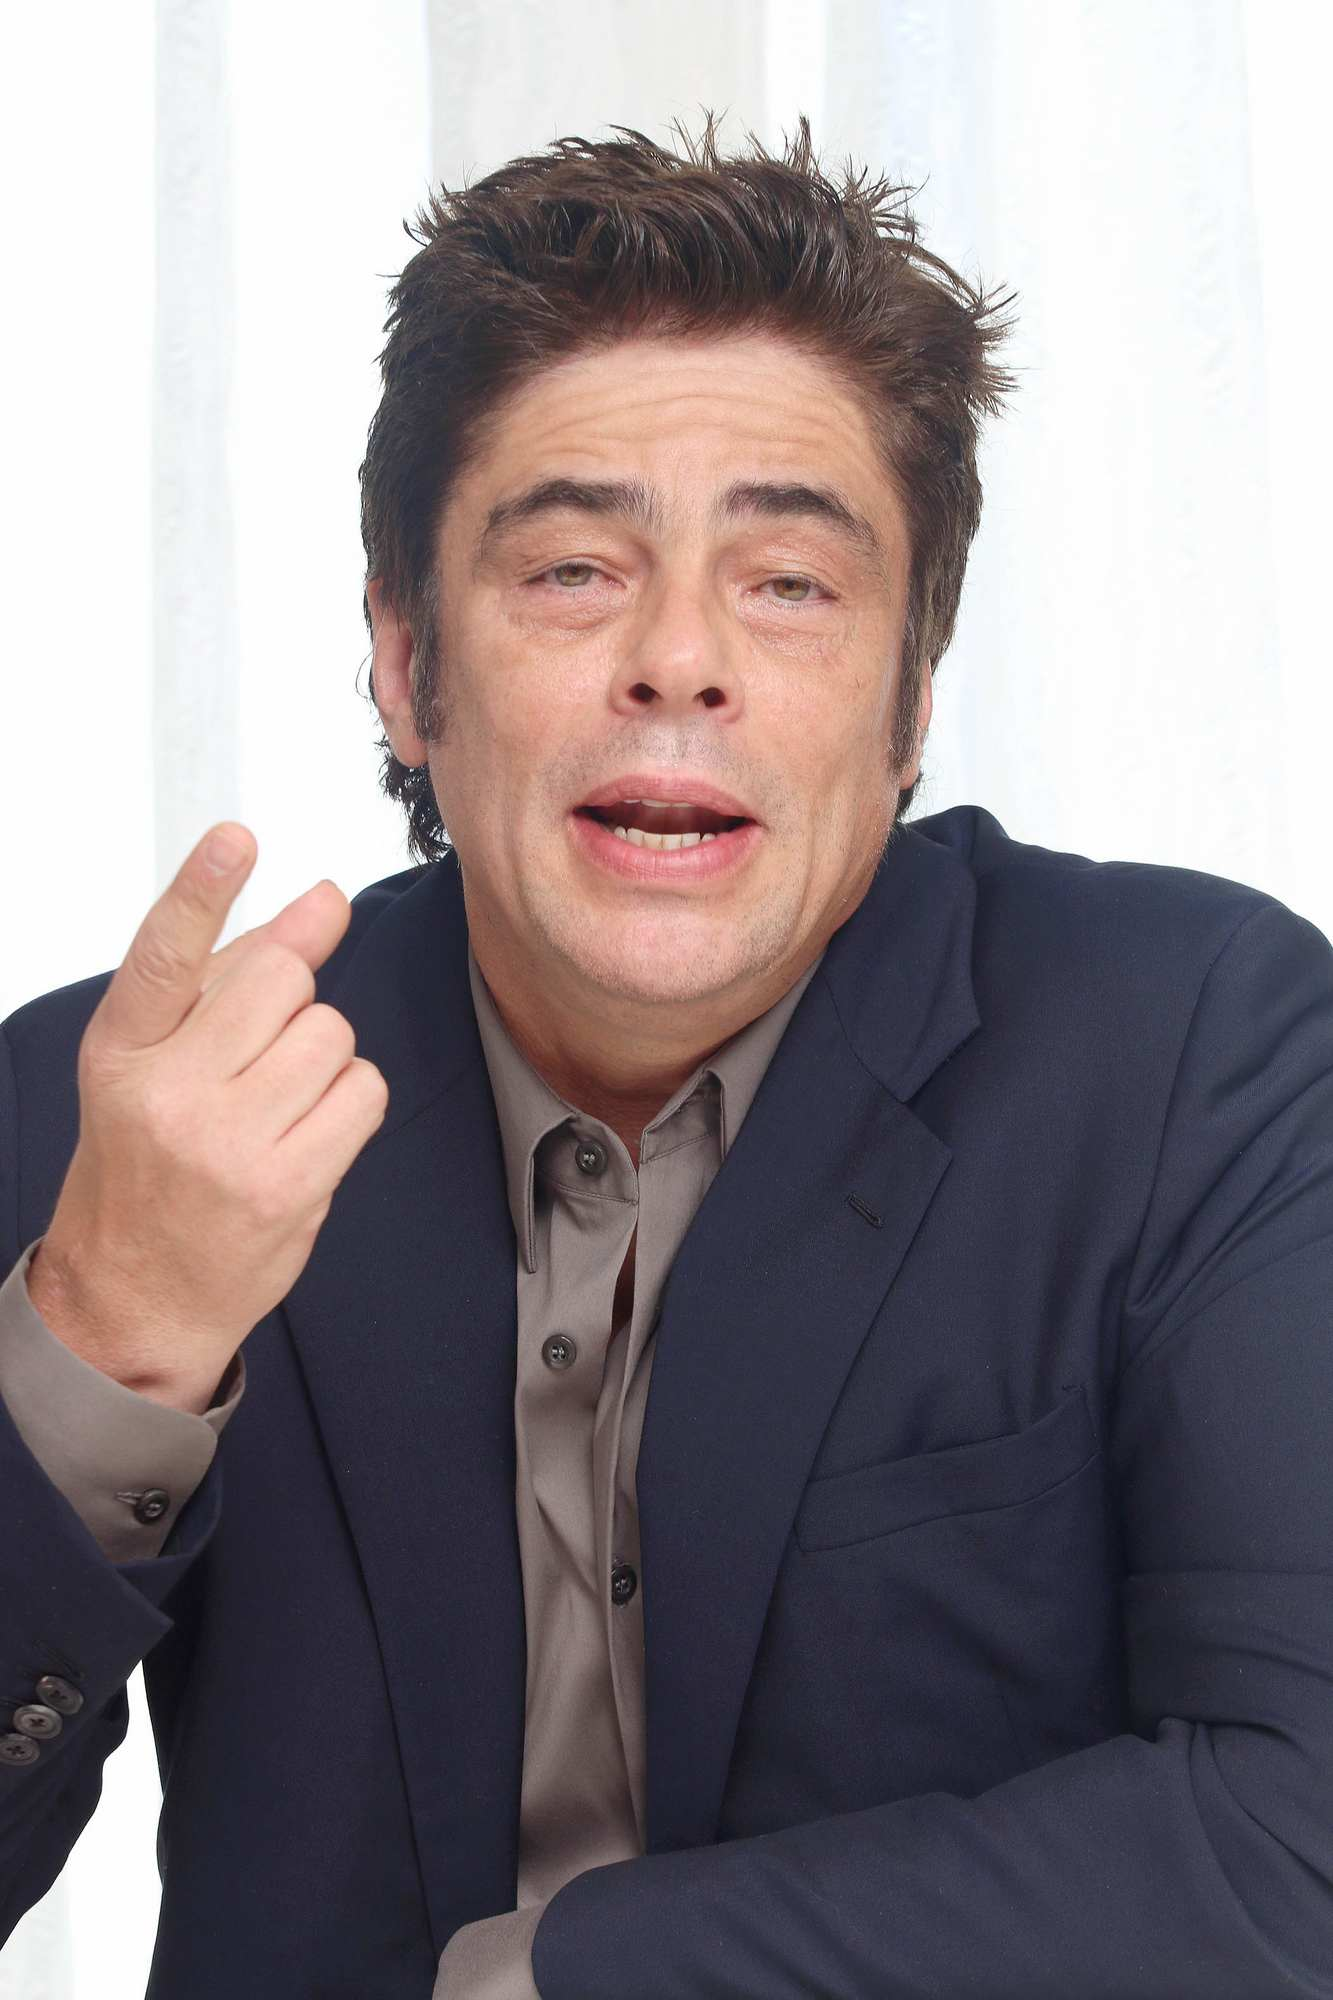 Benicio Del Toro at A Perfect Day Press Conference – Celeb Donut Emily Blunt